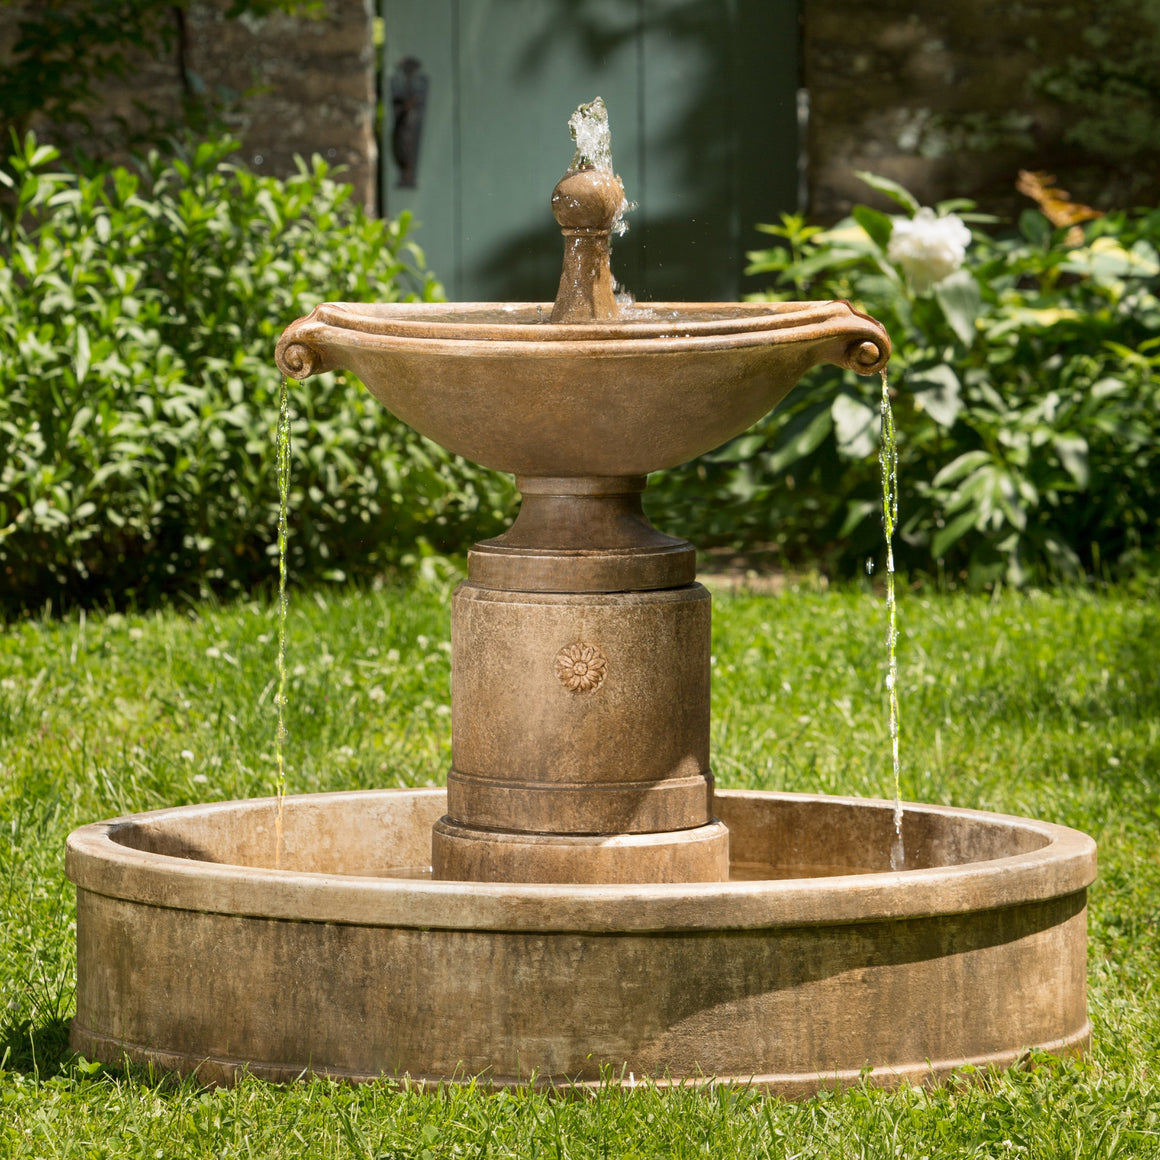 Borghese in Basin Outdoor Fountain - SoothingWalls